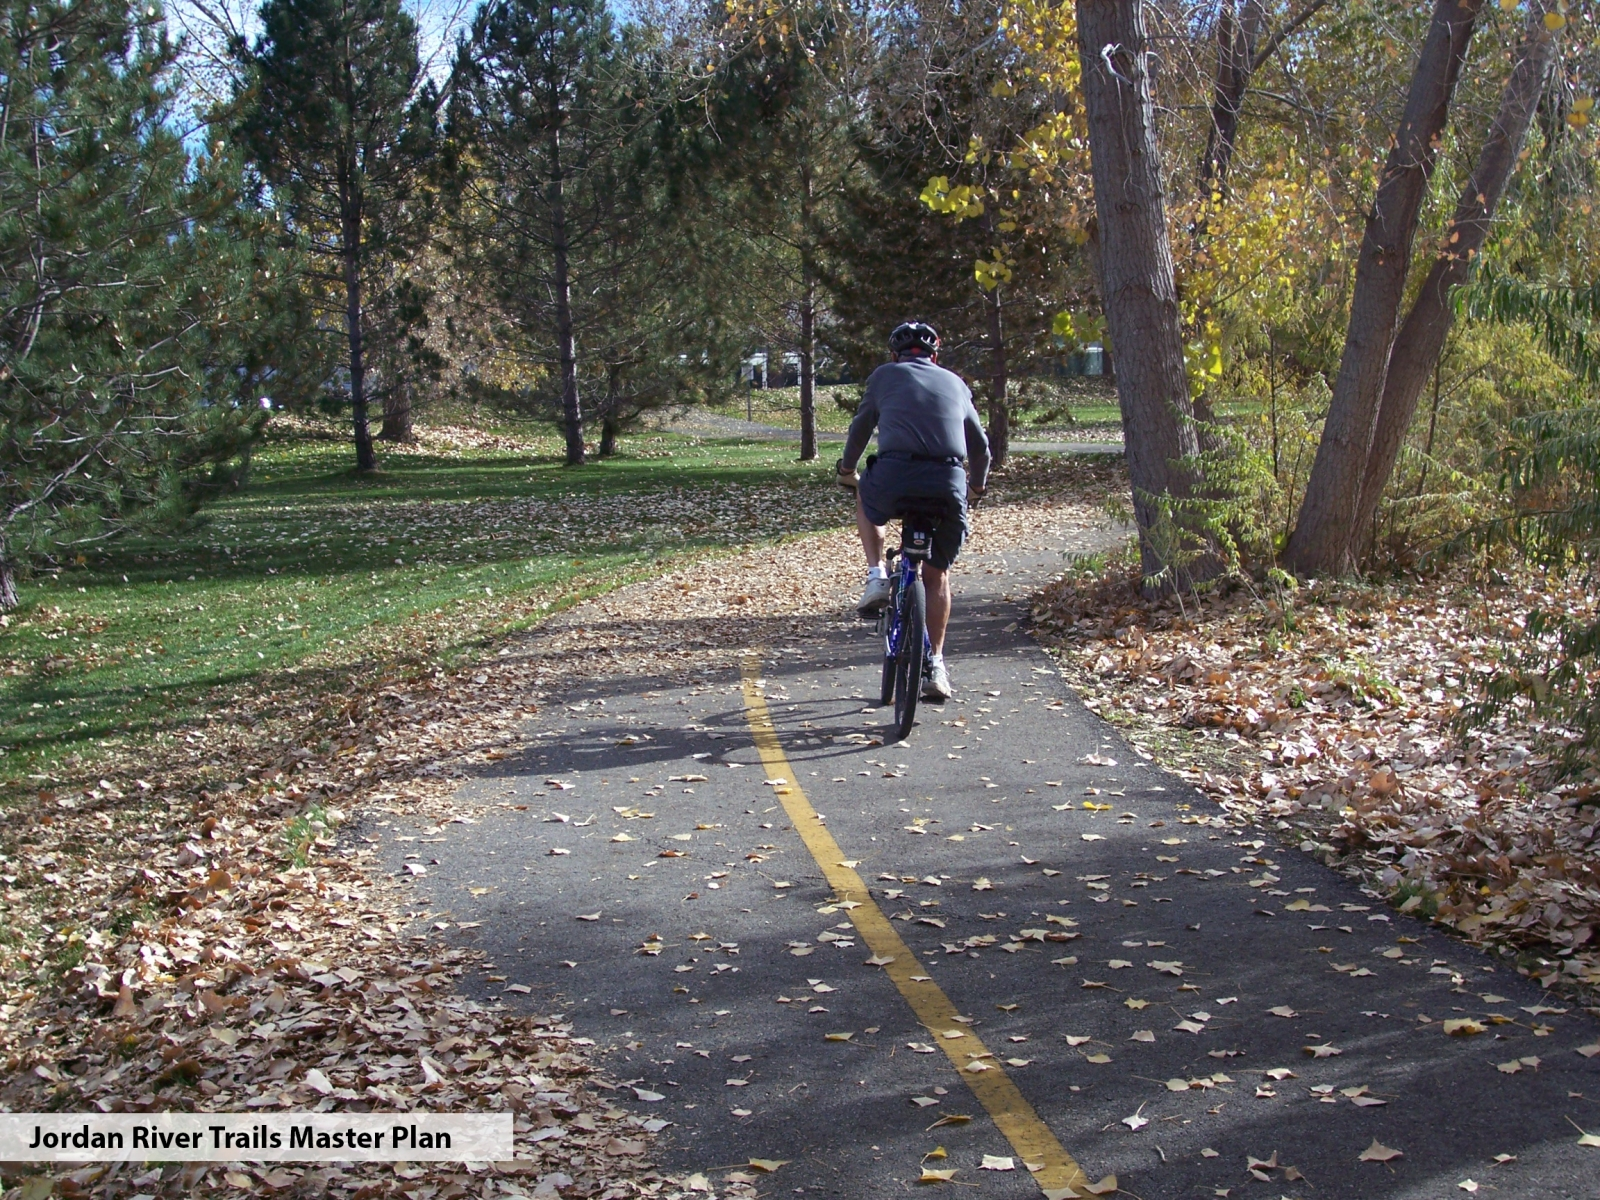 Trails & Active Transportation